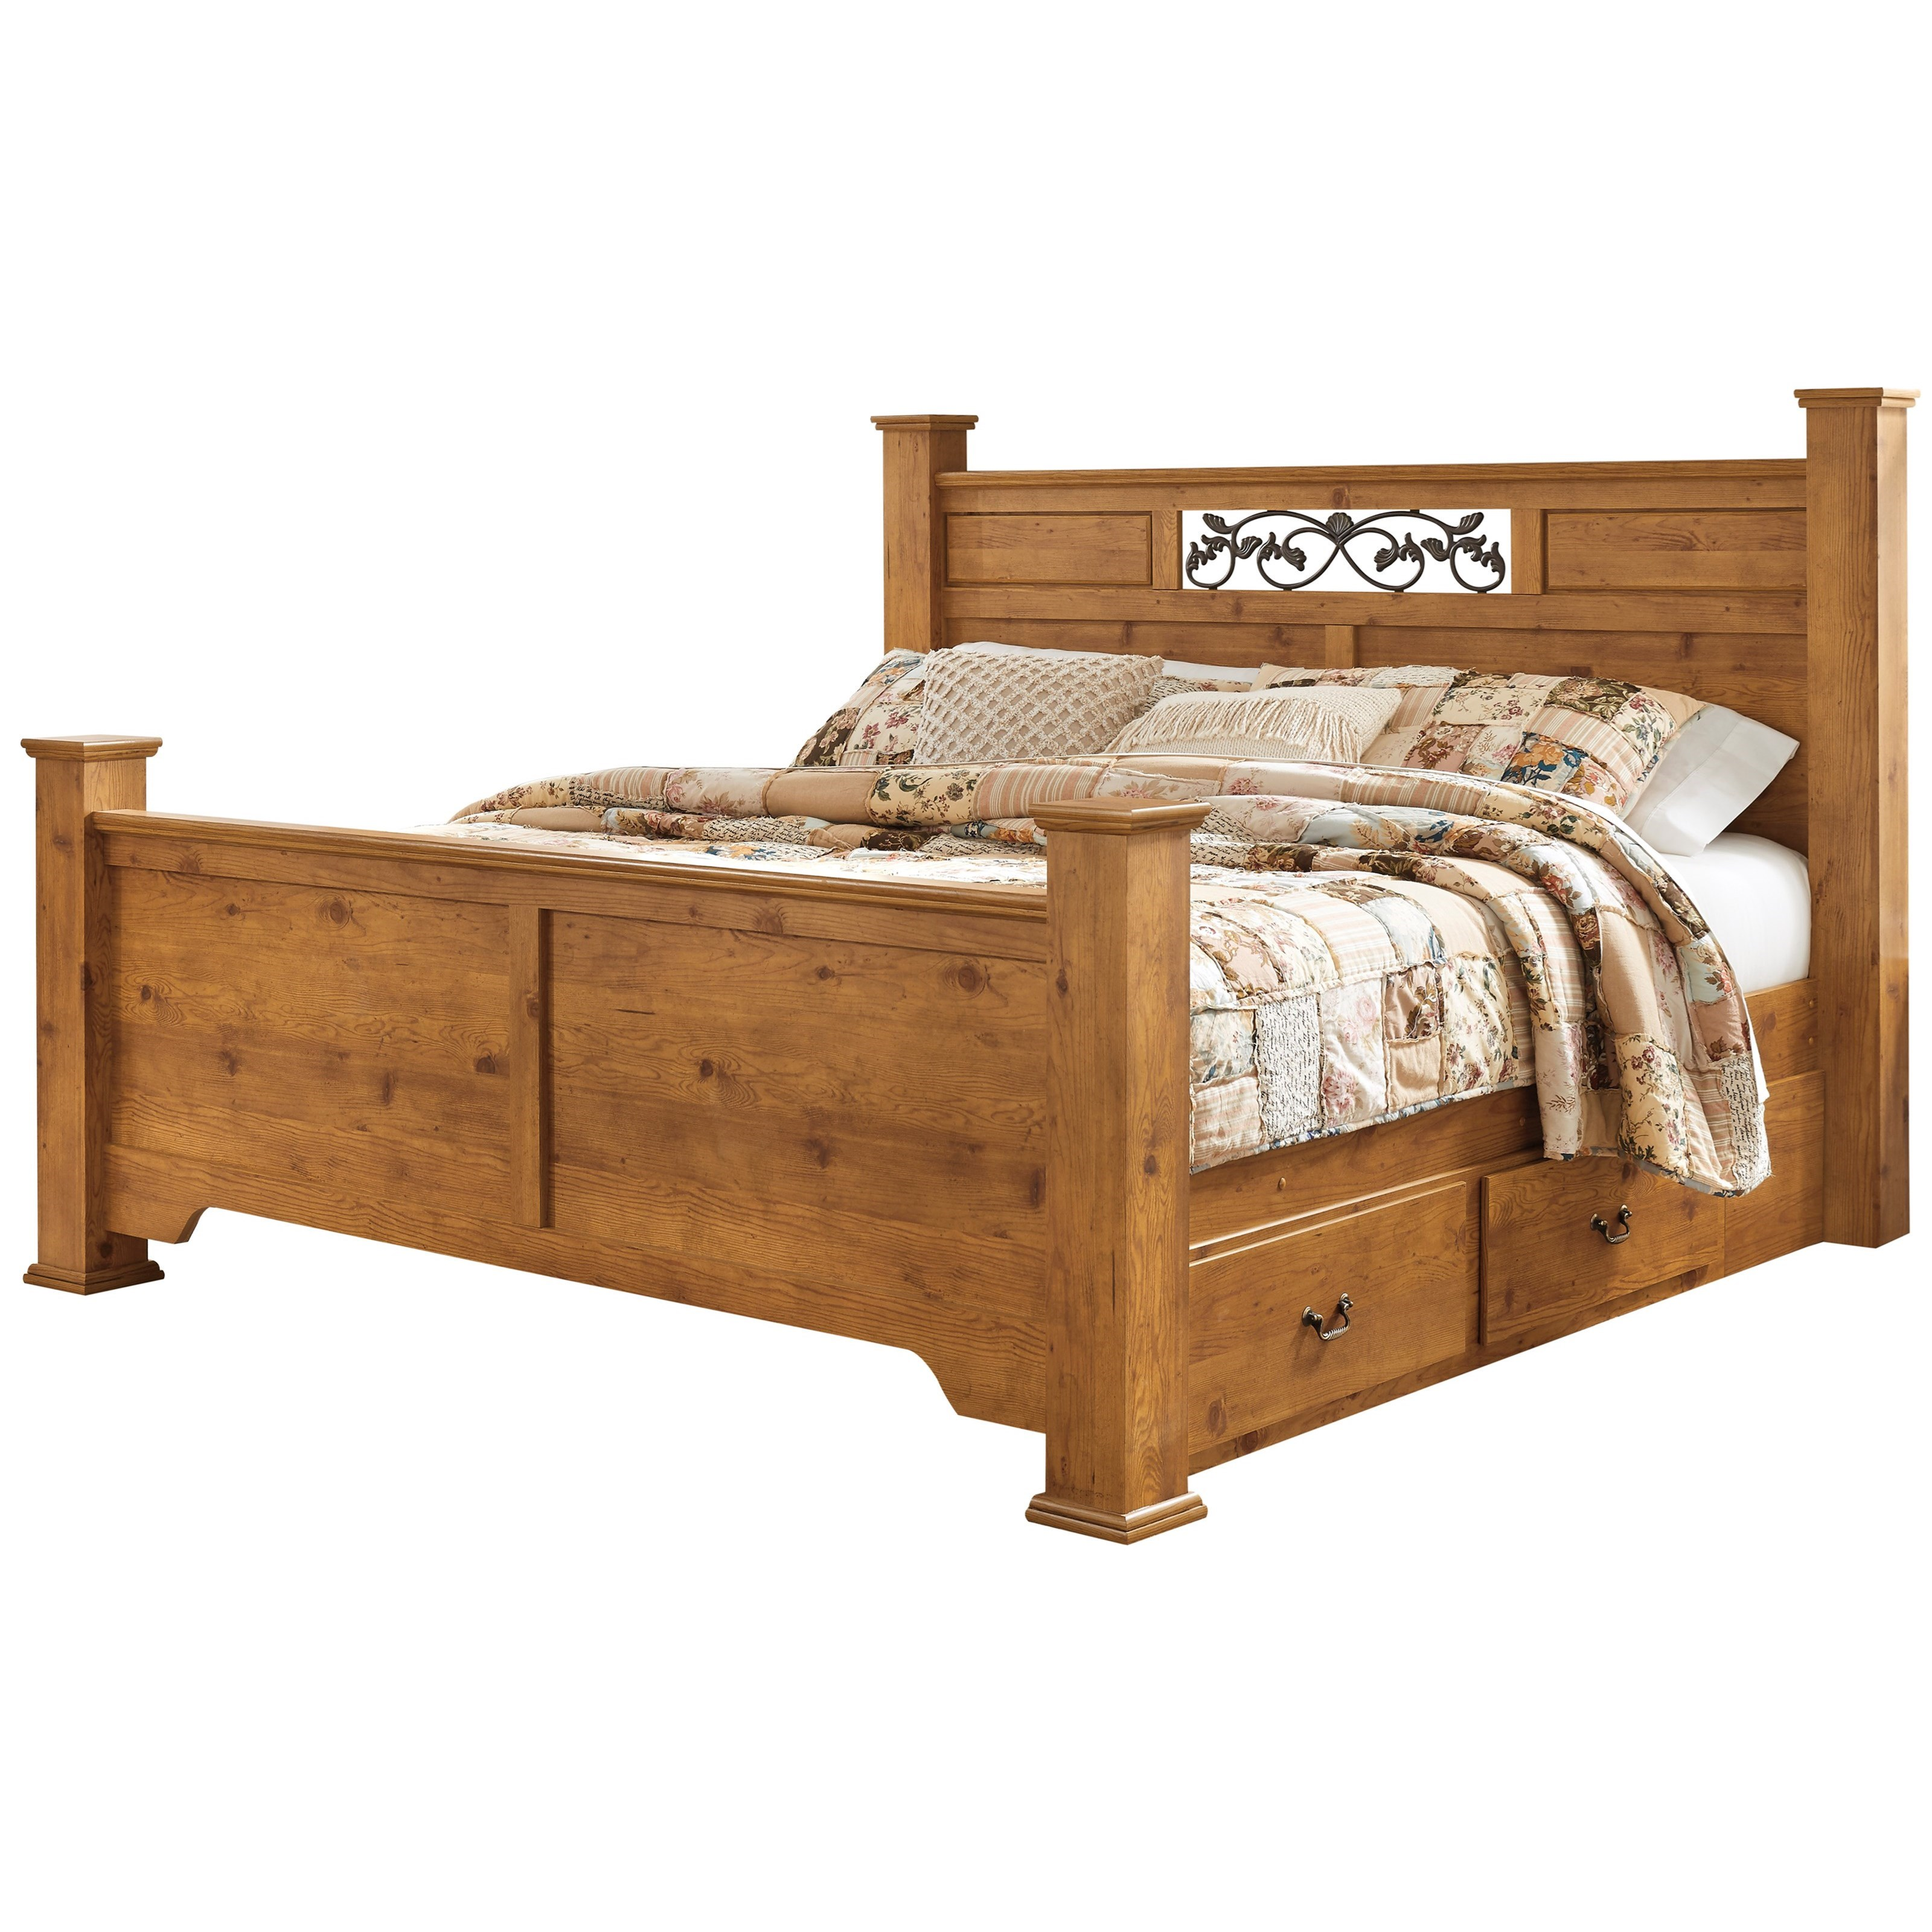 Bittersweet King Poster Bed Dimensions